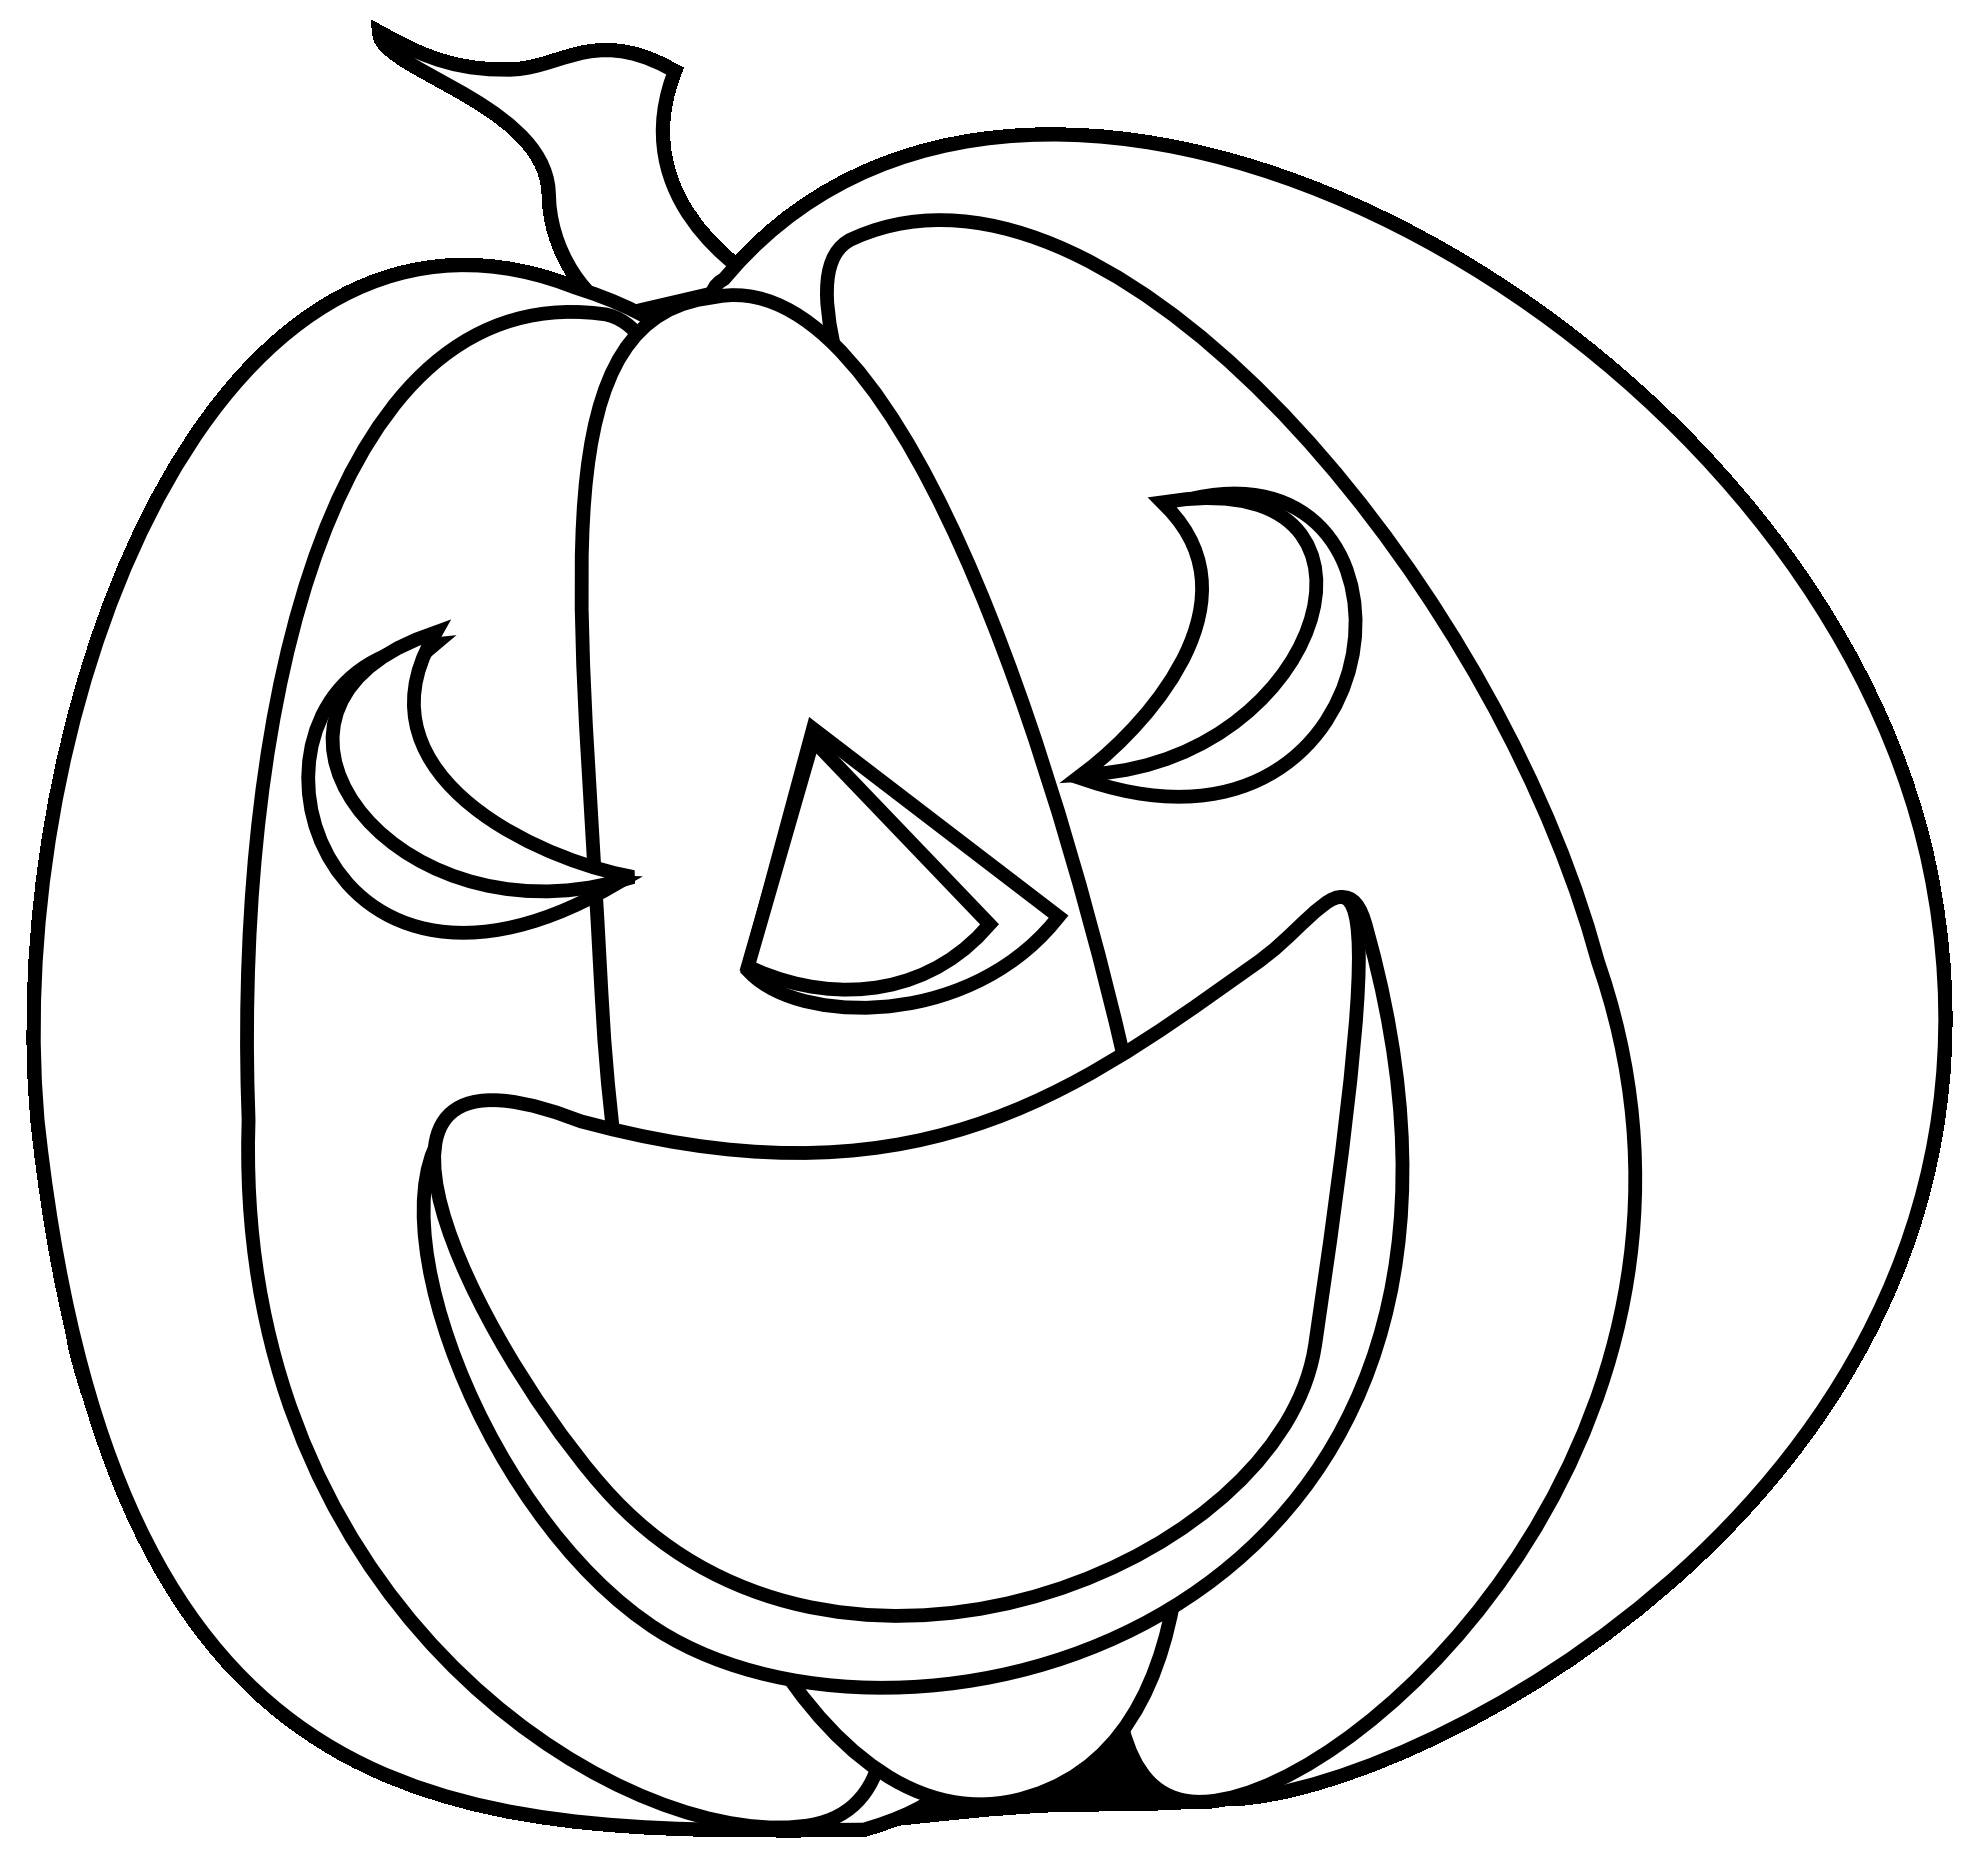 Halloween Pumpkin Clipart Black And White